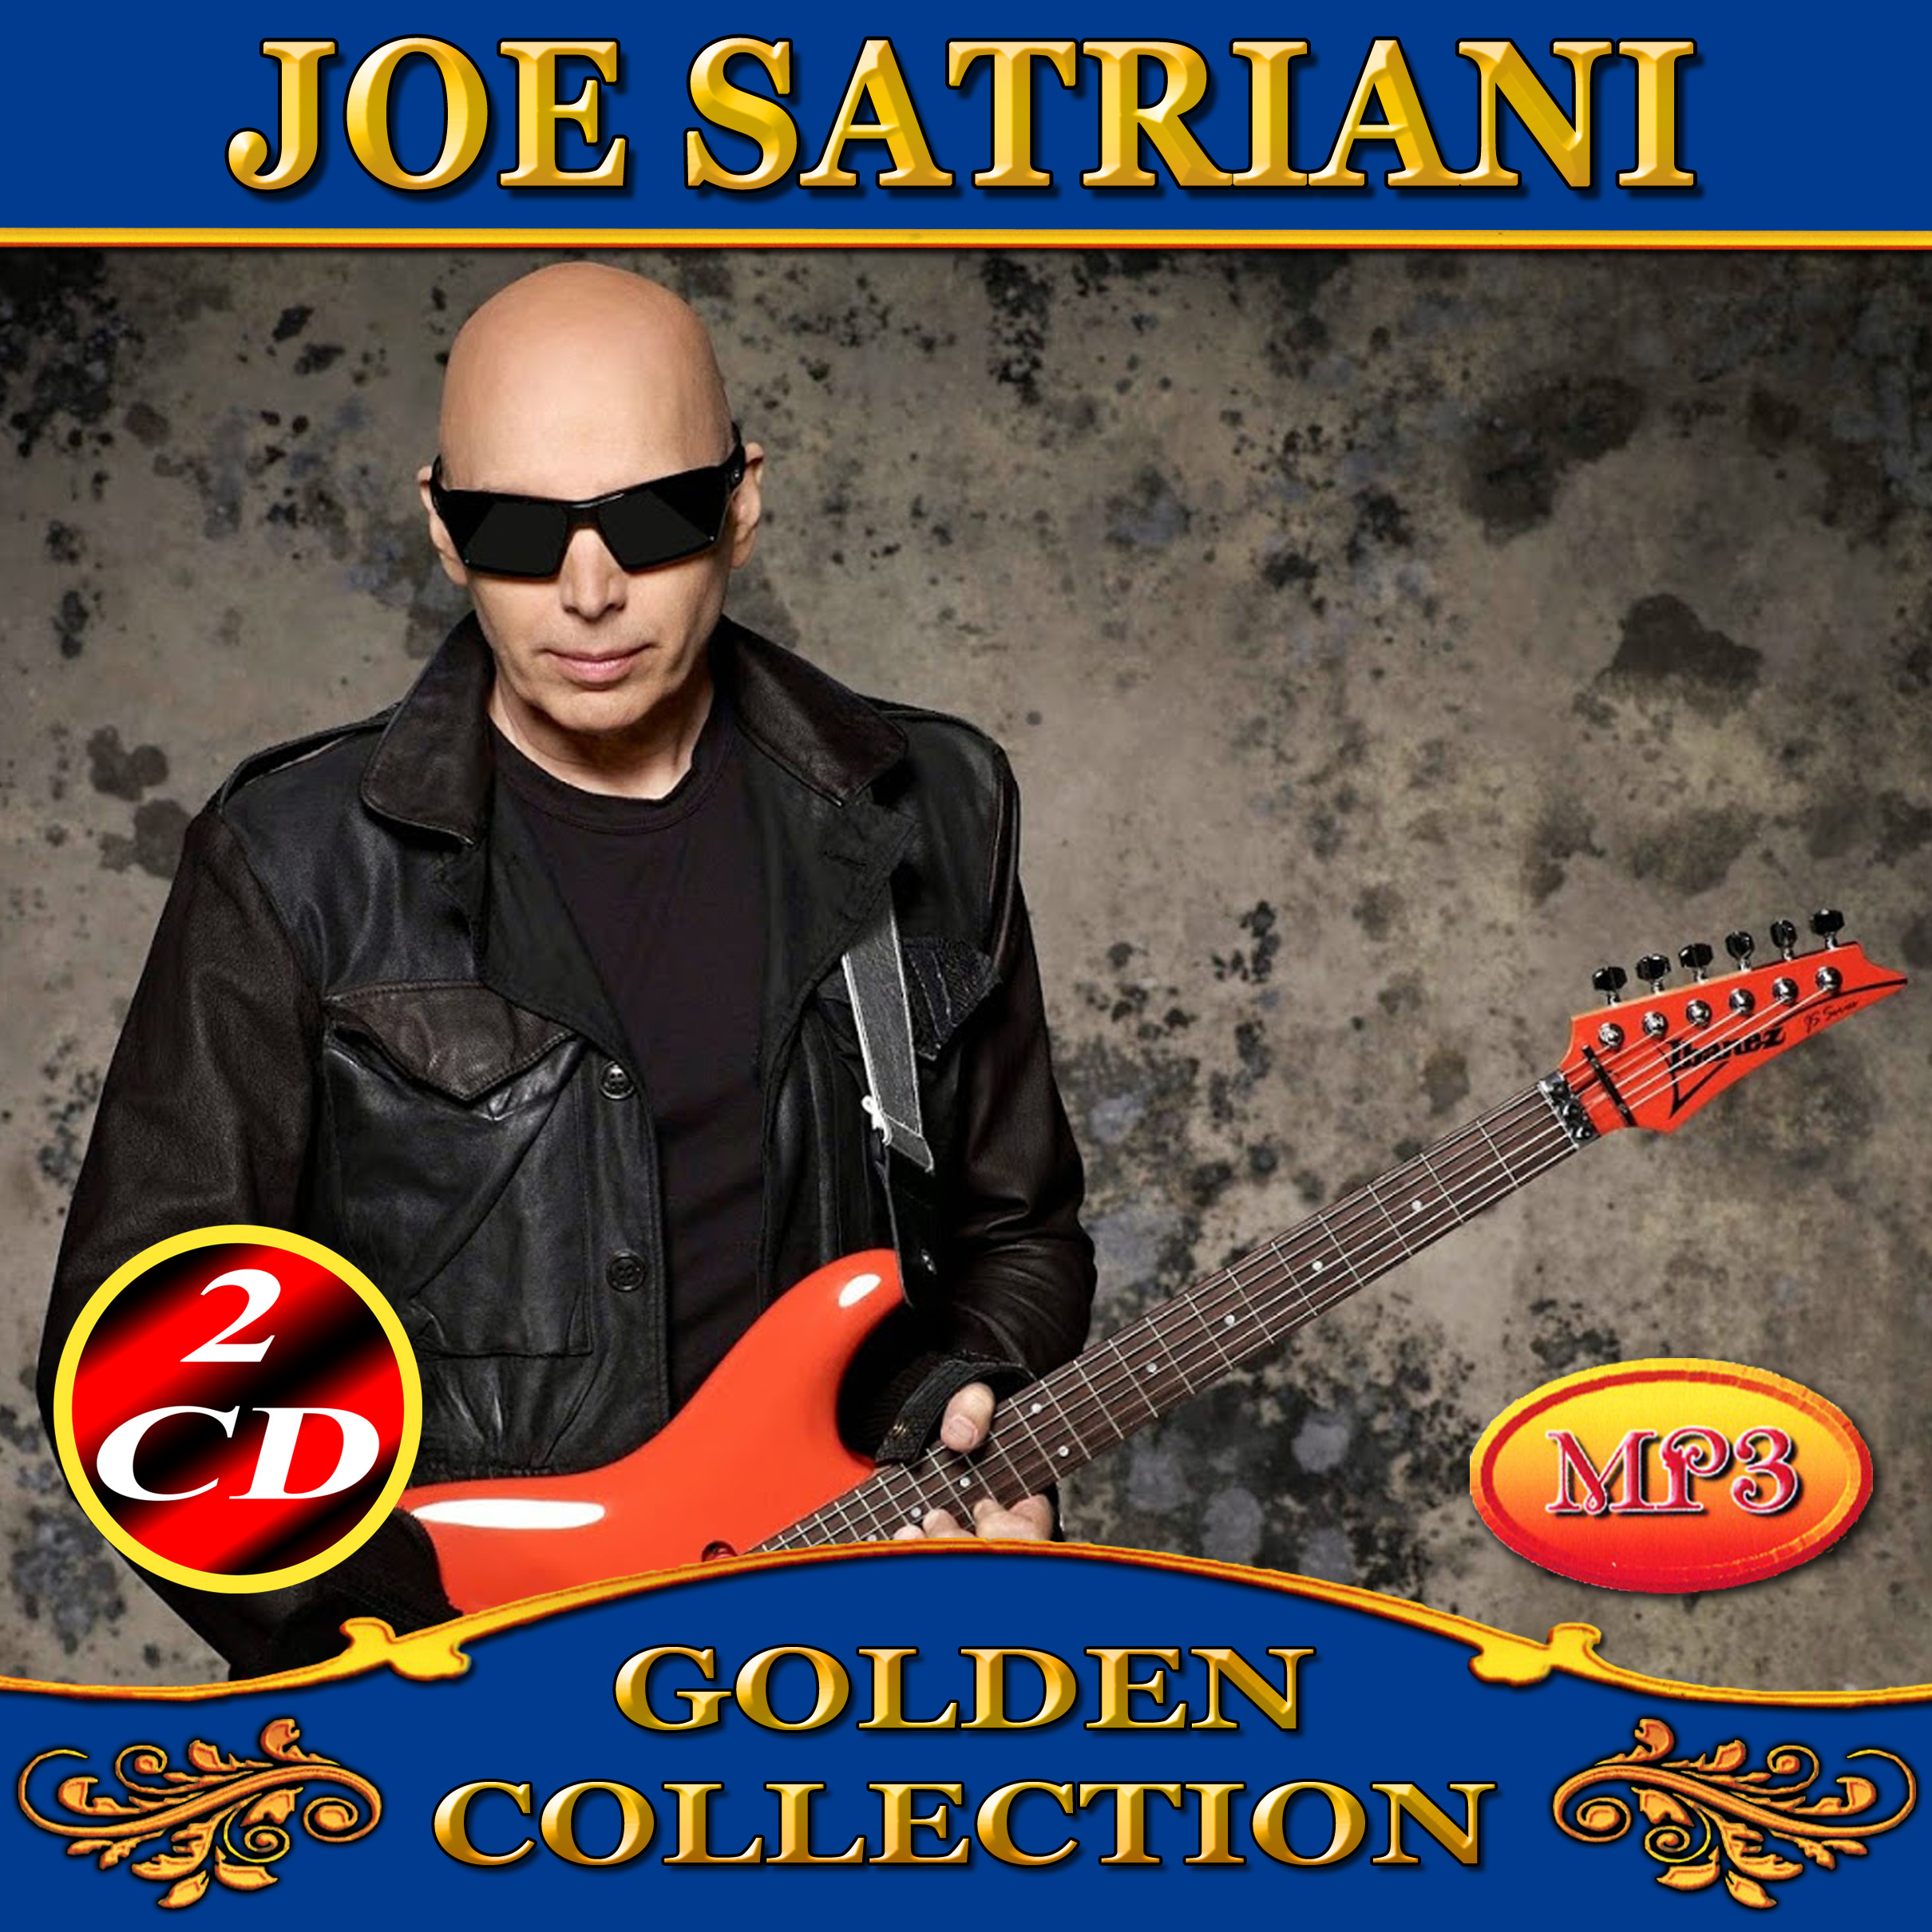 Joe Satriani 2cd [mp3]